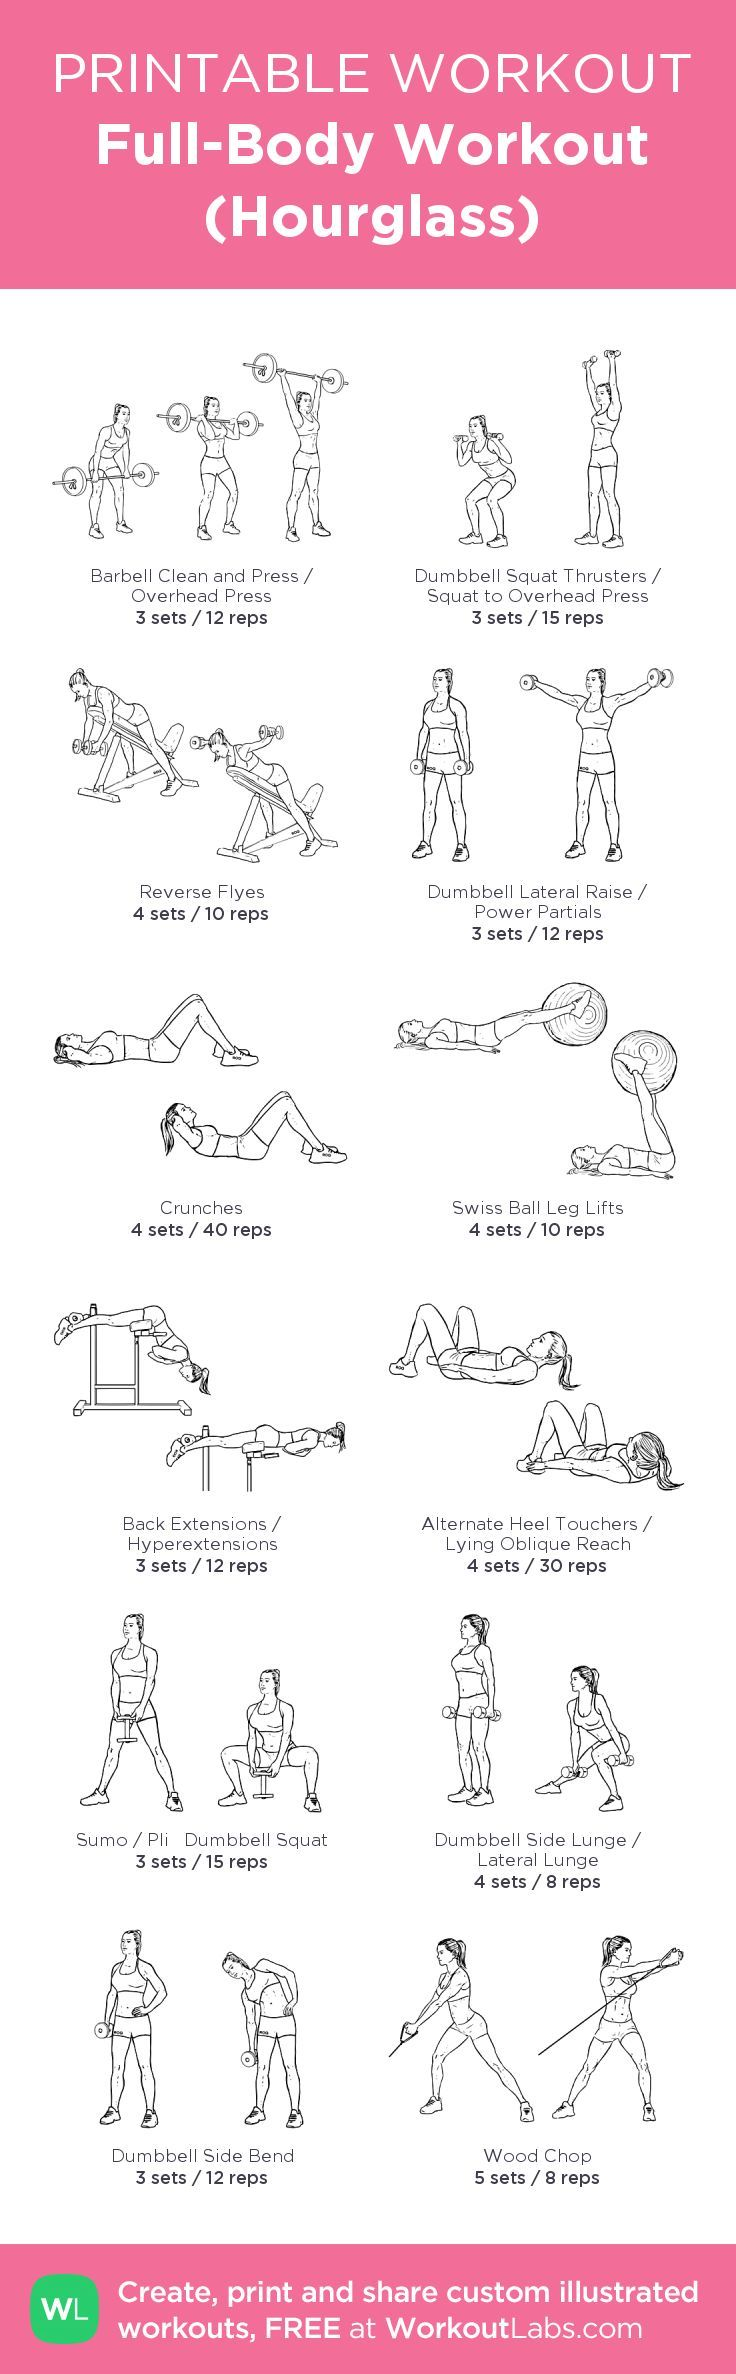 Full-Body Workout (Hourglass): my visual workout created at WorkoutLabs.com • Click through to customize and download as a FREE PDF! #customworkout #SexyAbs